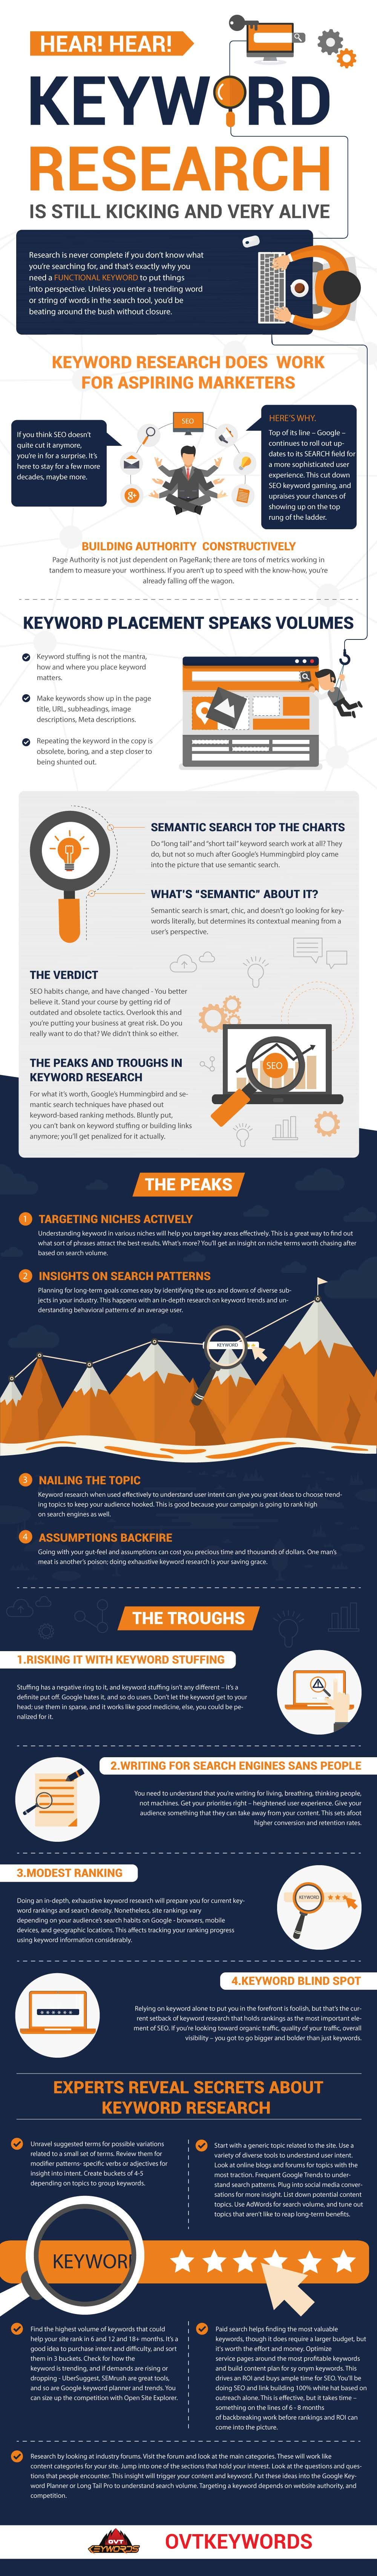 Keyword Research: Still Kicking and Very Alive #Infographic